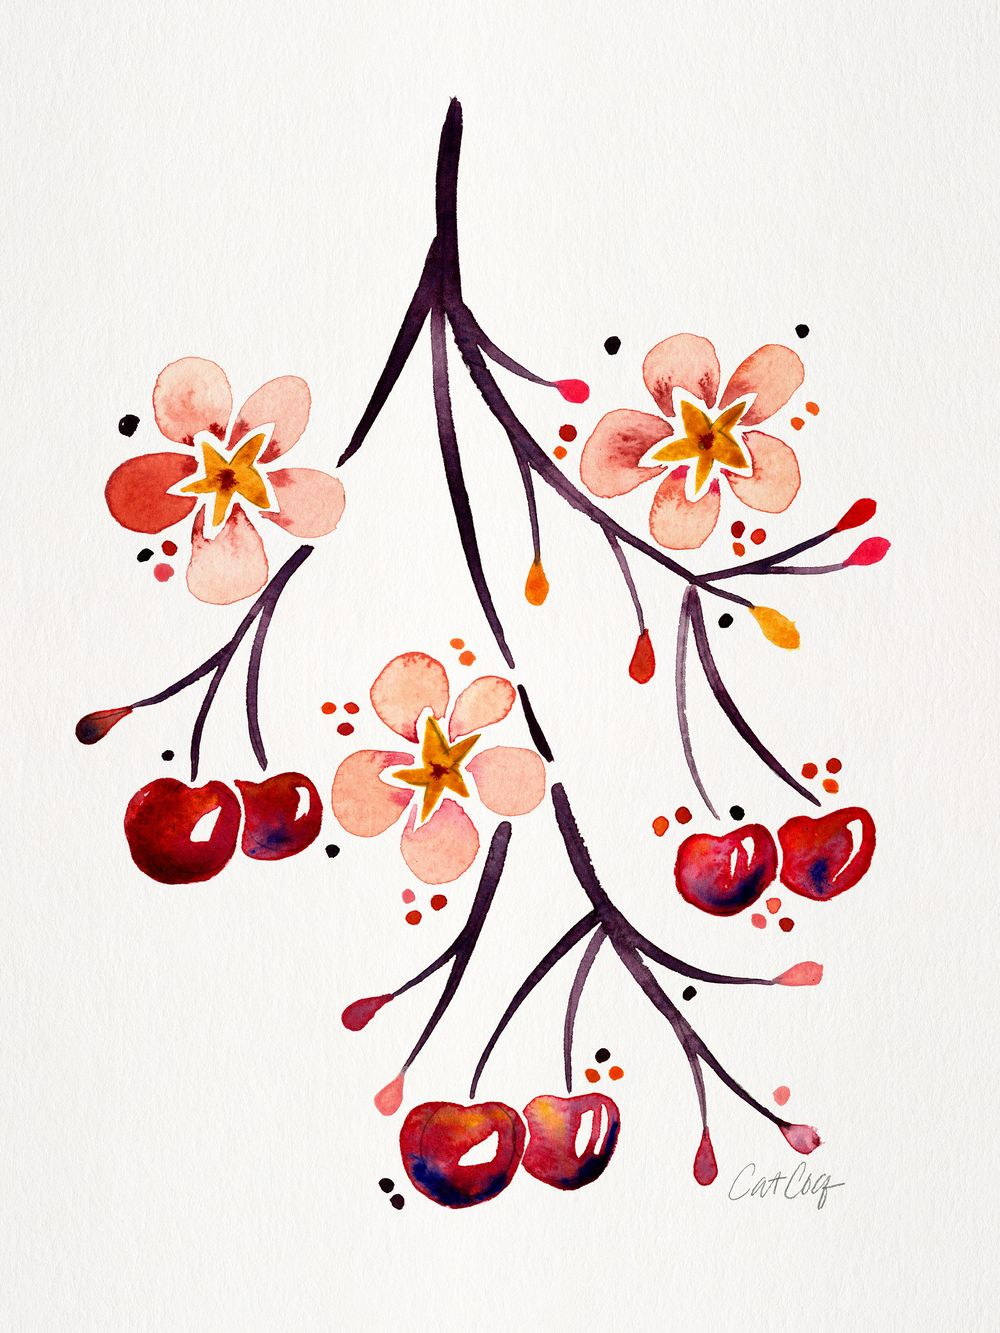 Fruits & Florals in Watercolor - image 3 - student project